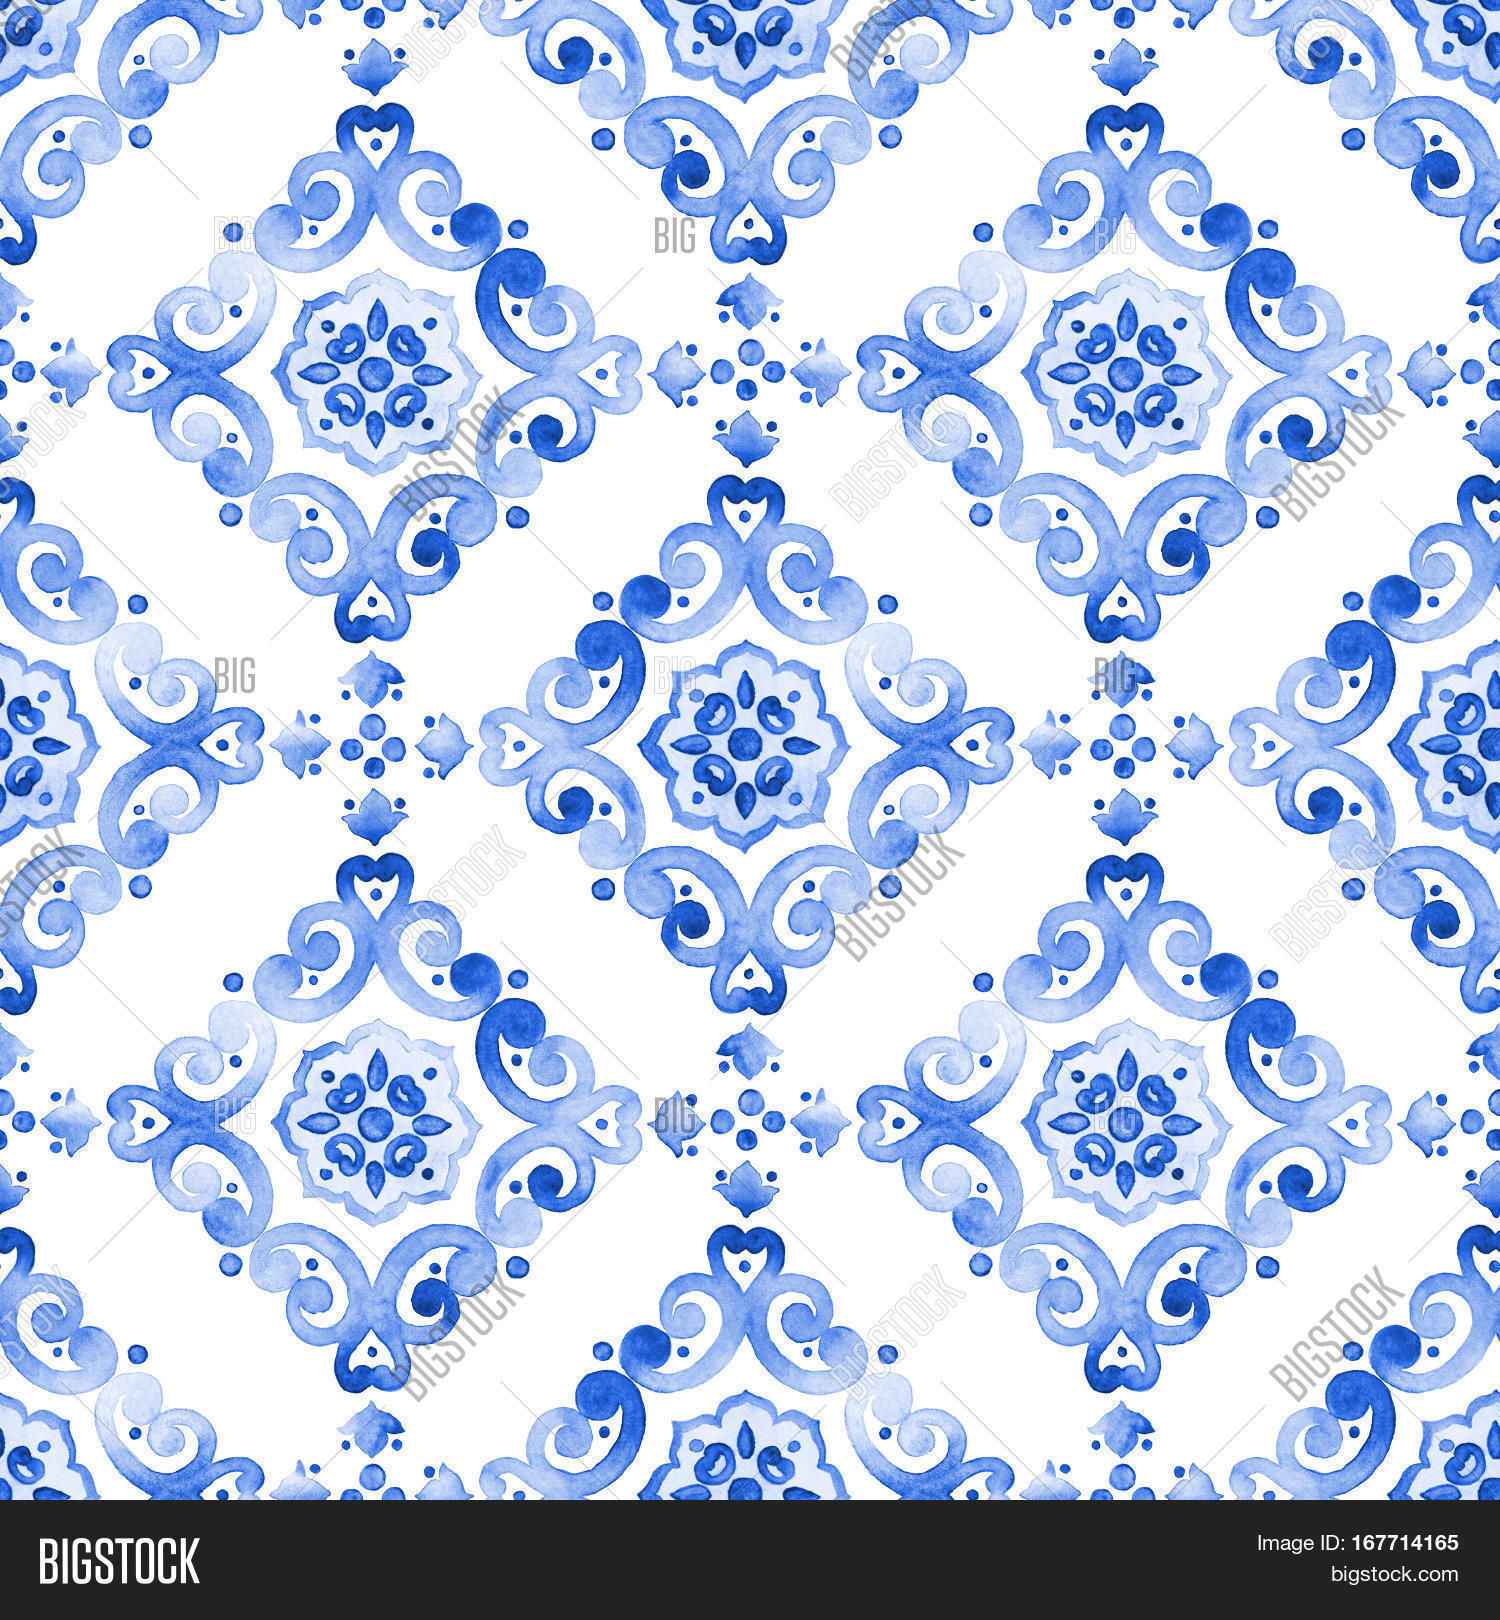 Delft Blue Style Seamless Pattern Watercolor Vintage Filigree Cobalt Ornament For Textile Fabric Wallpaper